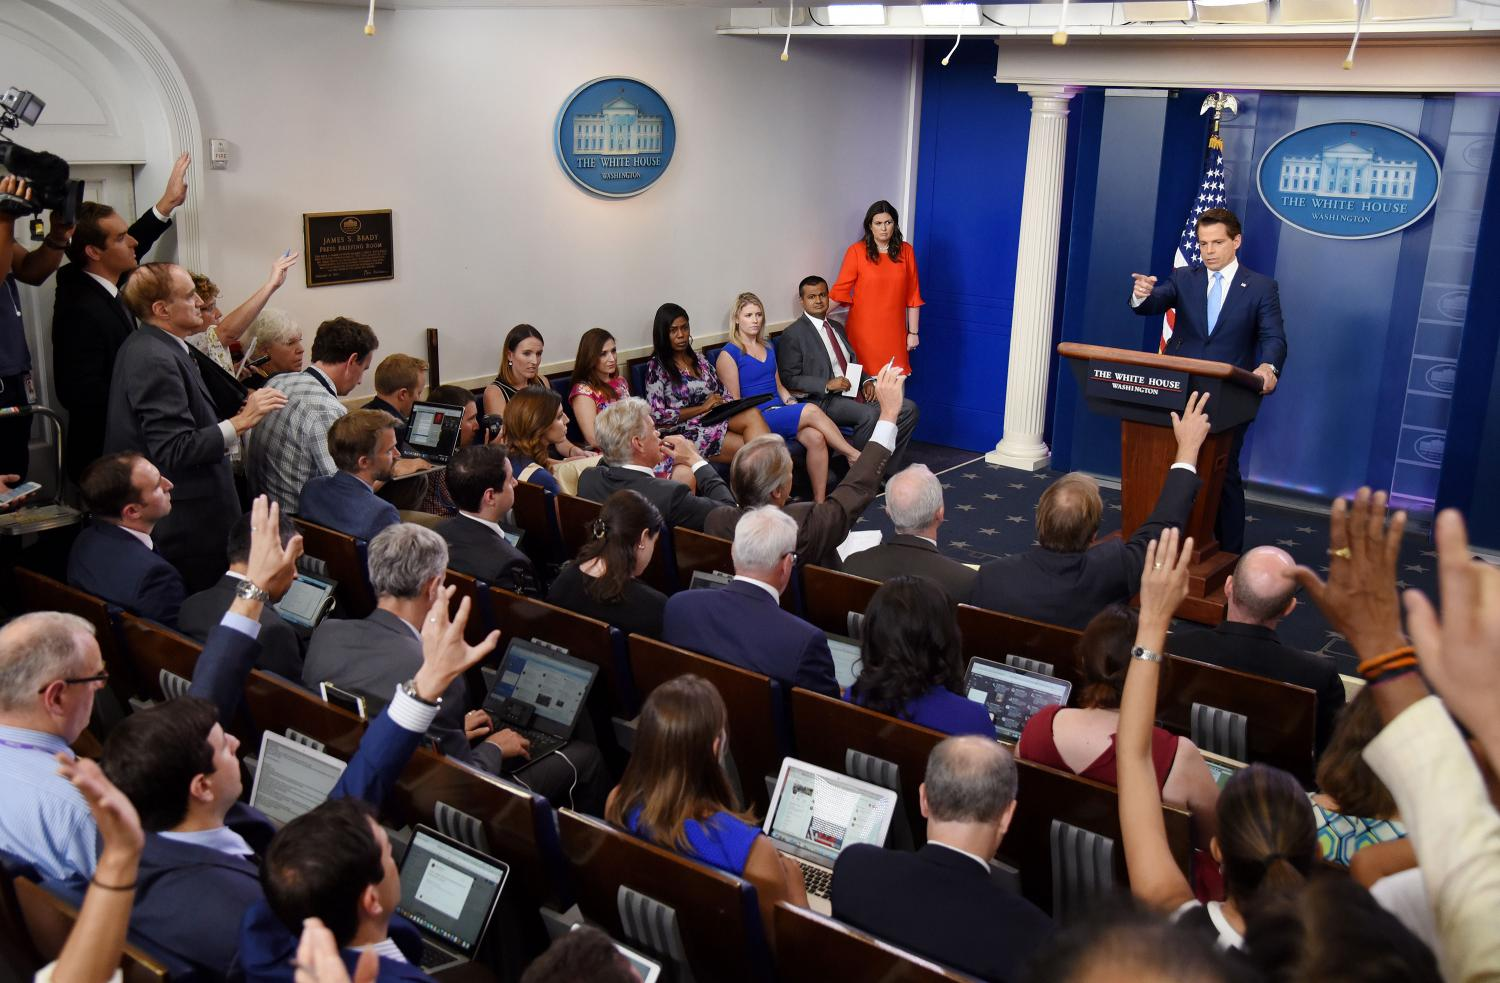 (Olivier Douliery/Abaca Press/TNS) Newly appointed White House Communications Director Anthony Scaramucci answers questions about the resignation of White House Press Secretary Sean Spicer during a press briefing on Friday, July 21, 2017 at the White House in Washington, D.C.